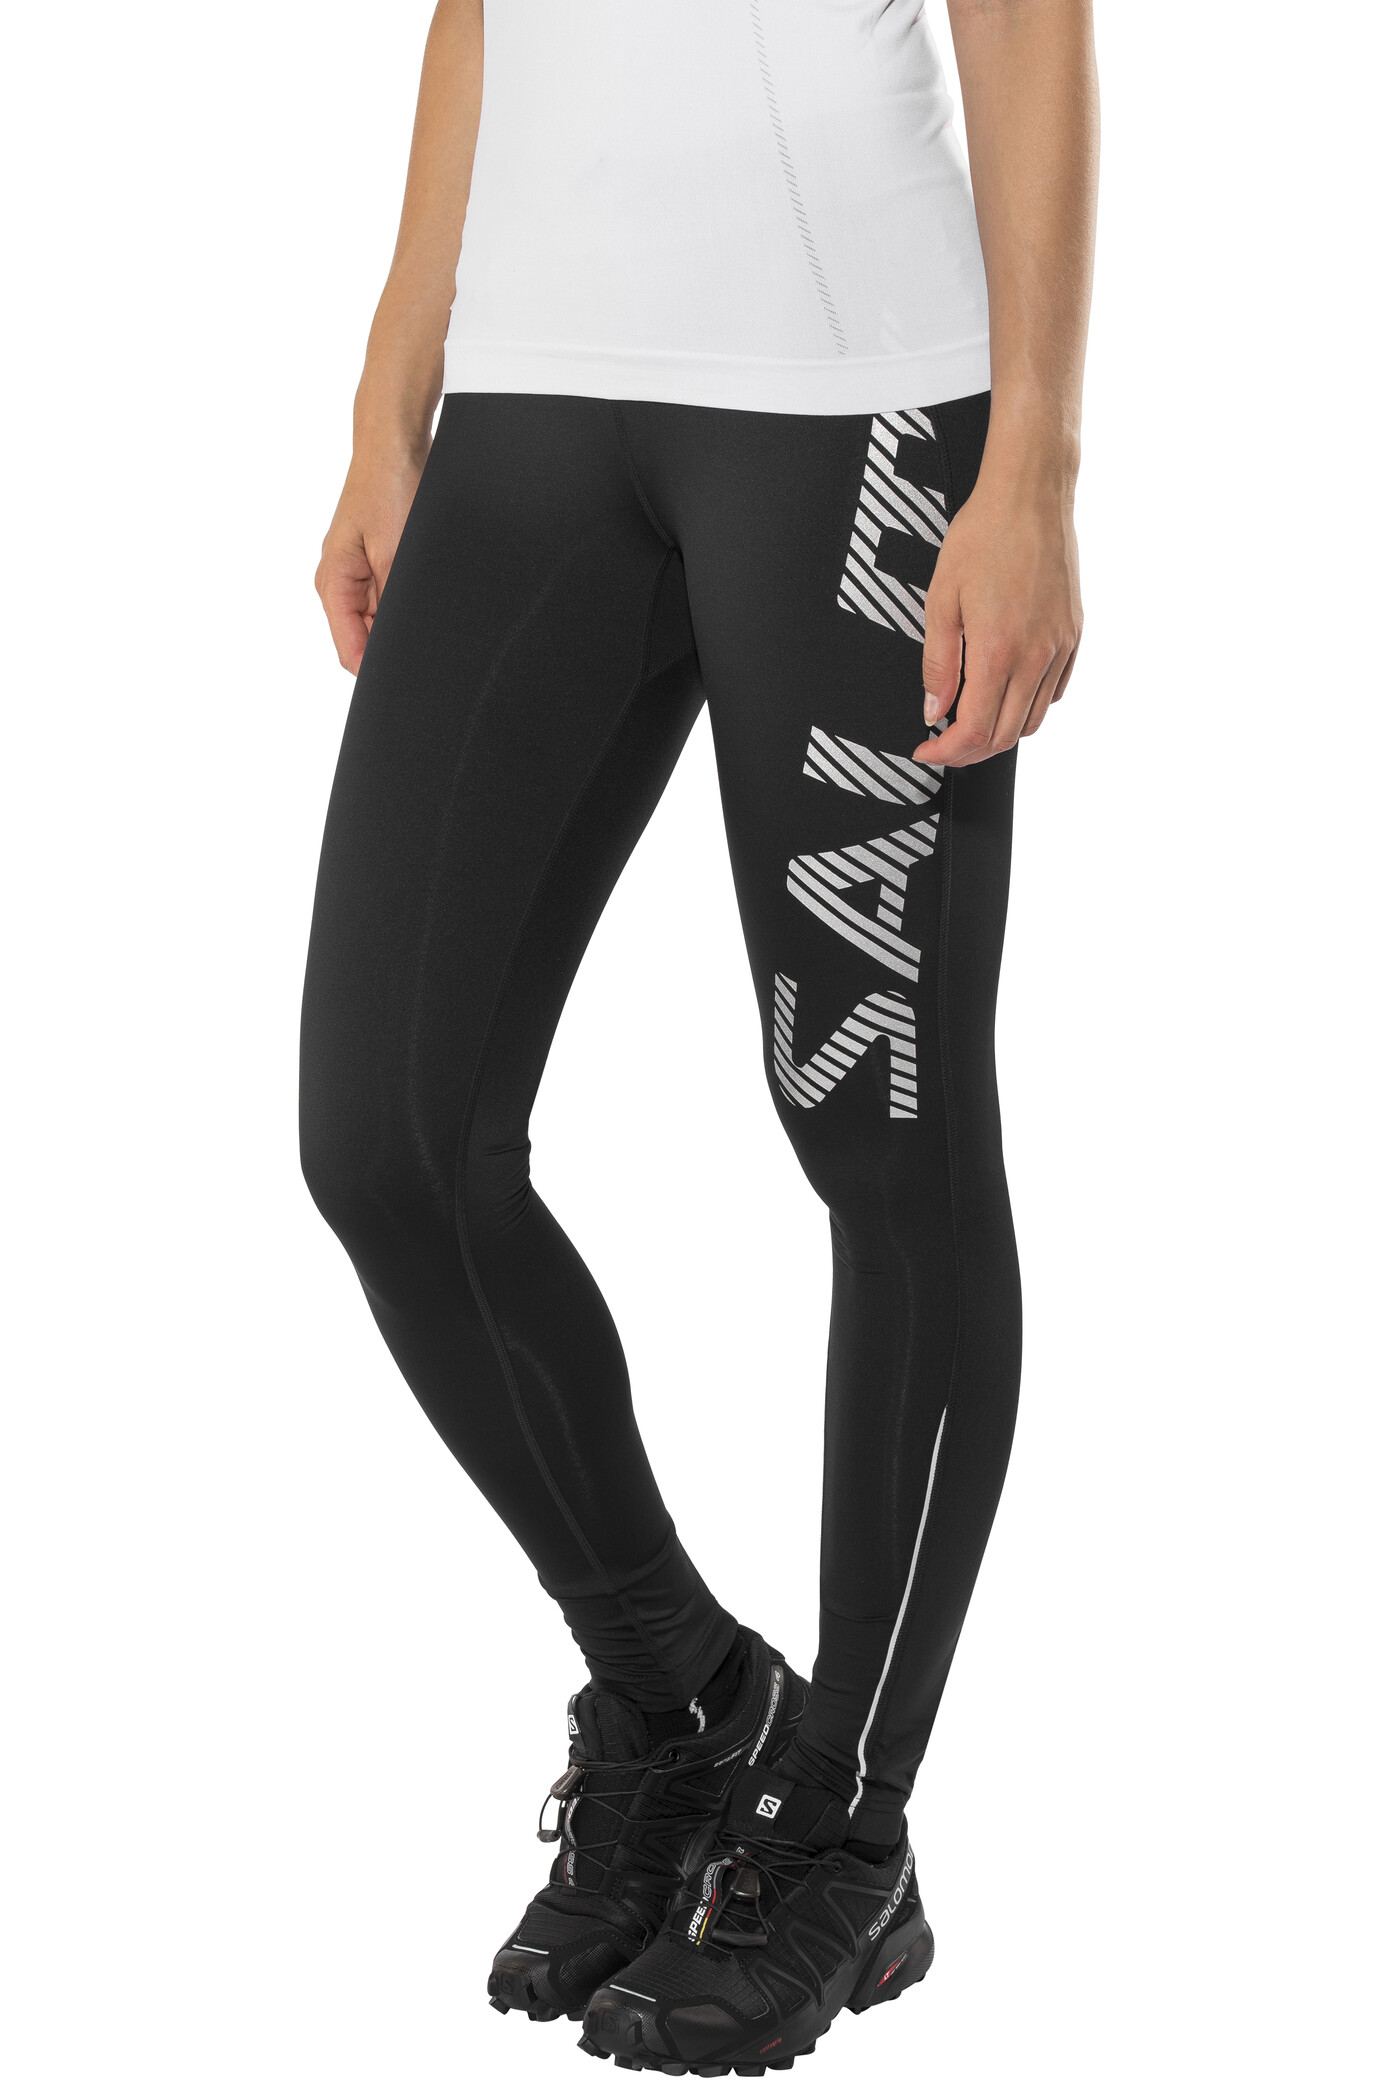 Salming Logo 2.0 Tights Damer, black/silver (2019) | Trousers